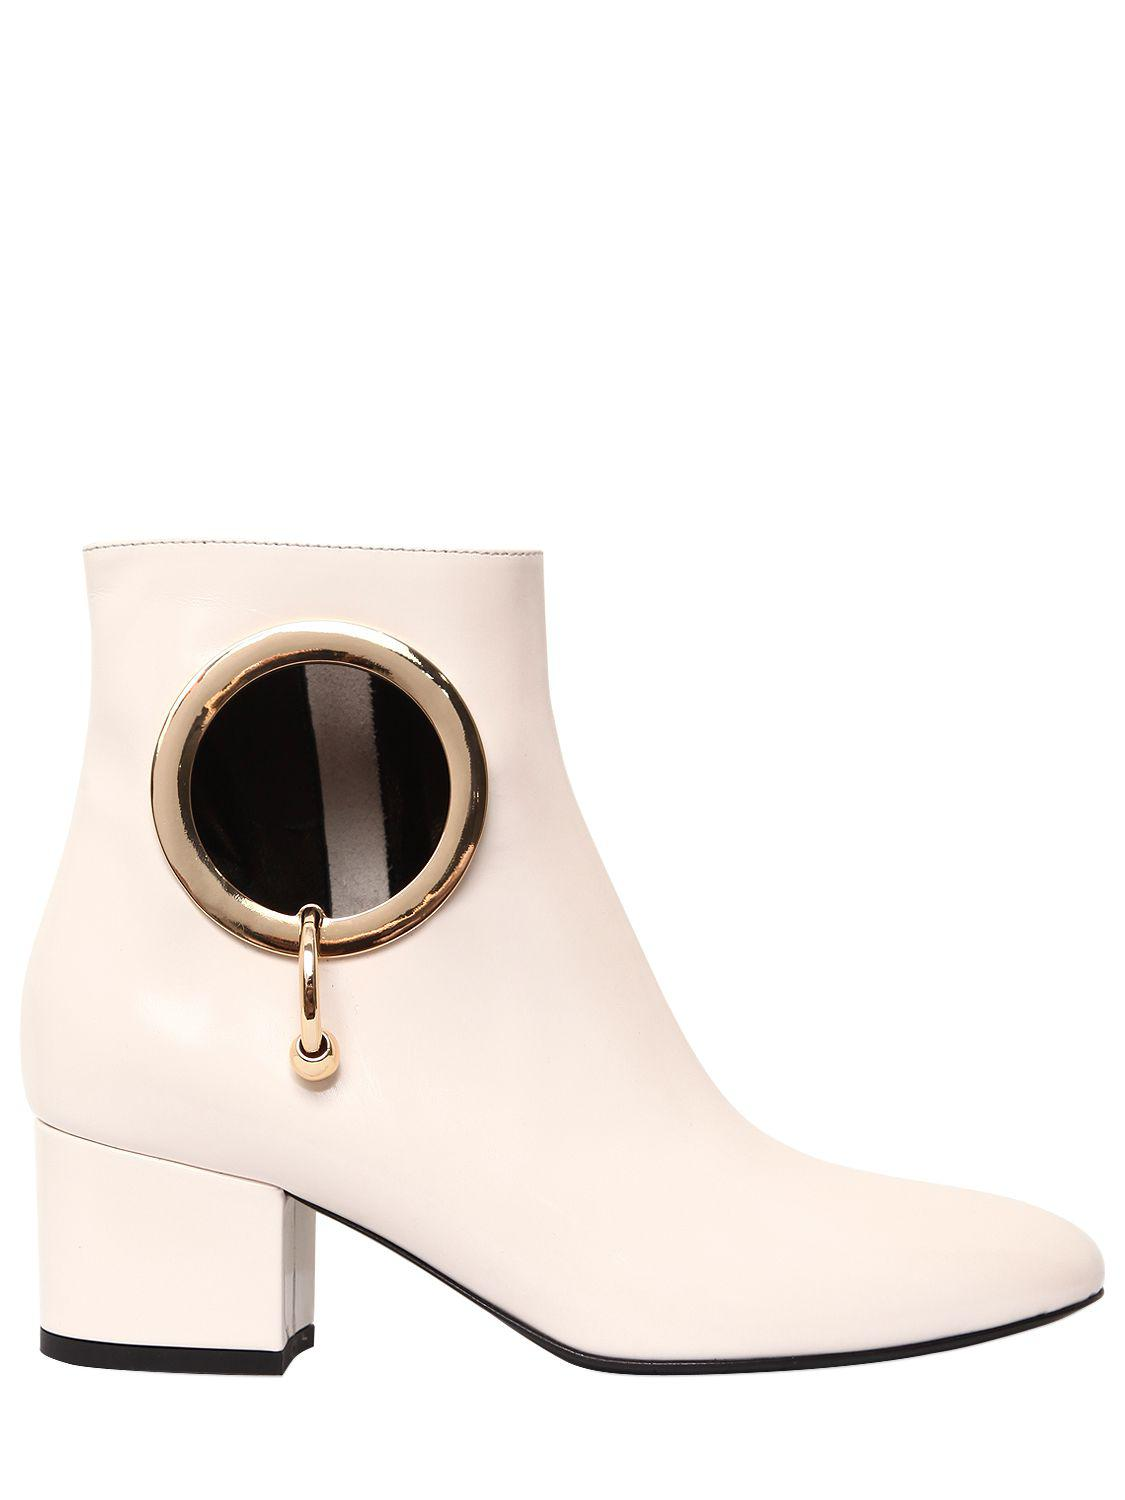 COLIAC 55MM ALICE CUTOUT LEATHER ANKLE BOOTS 5Q5kH97Gs